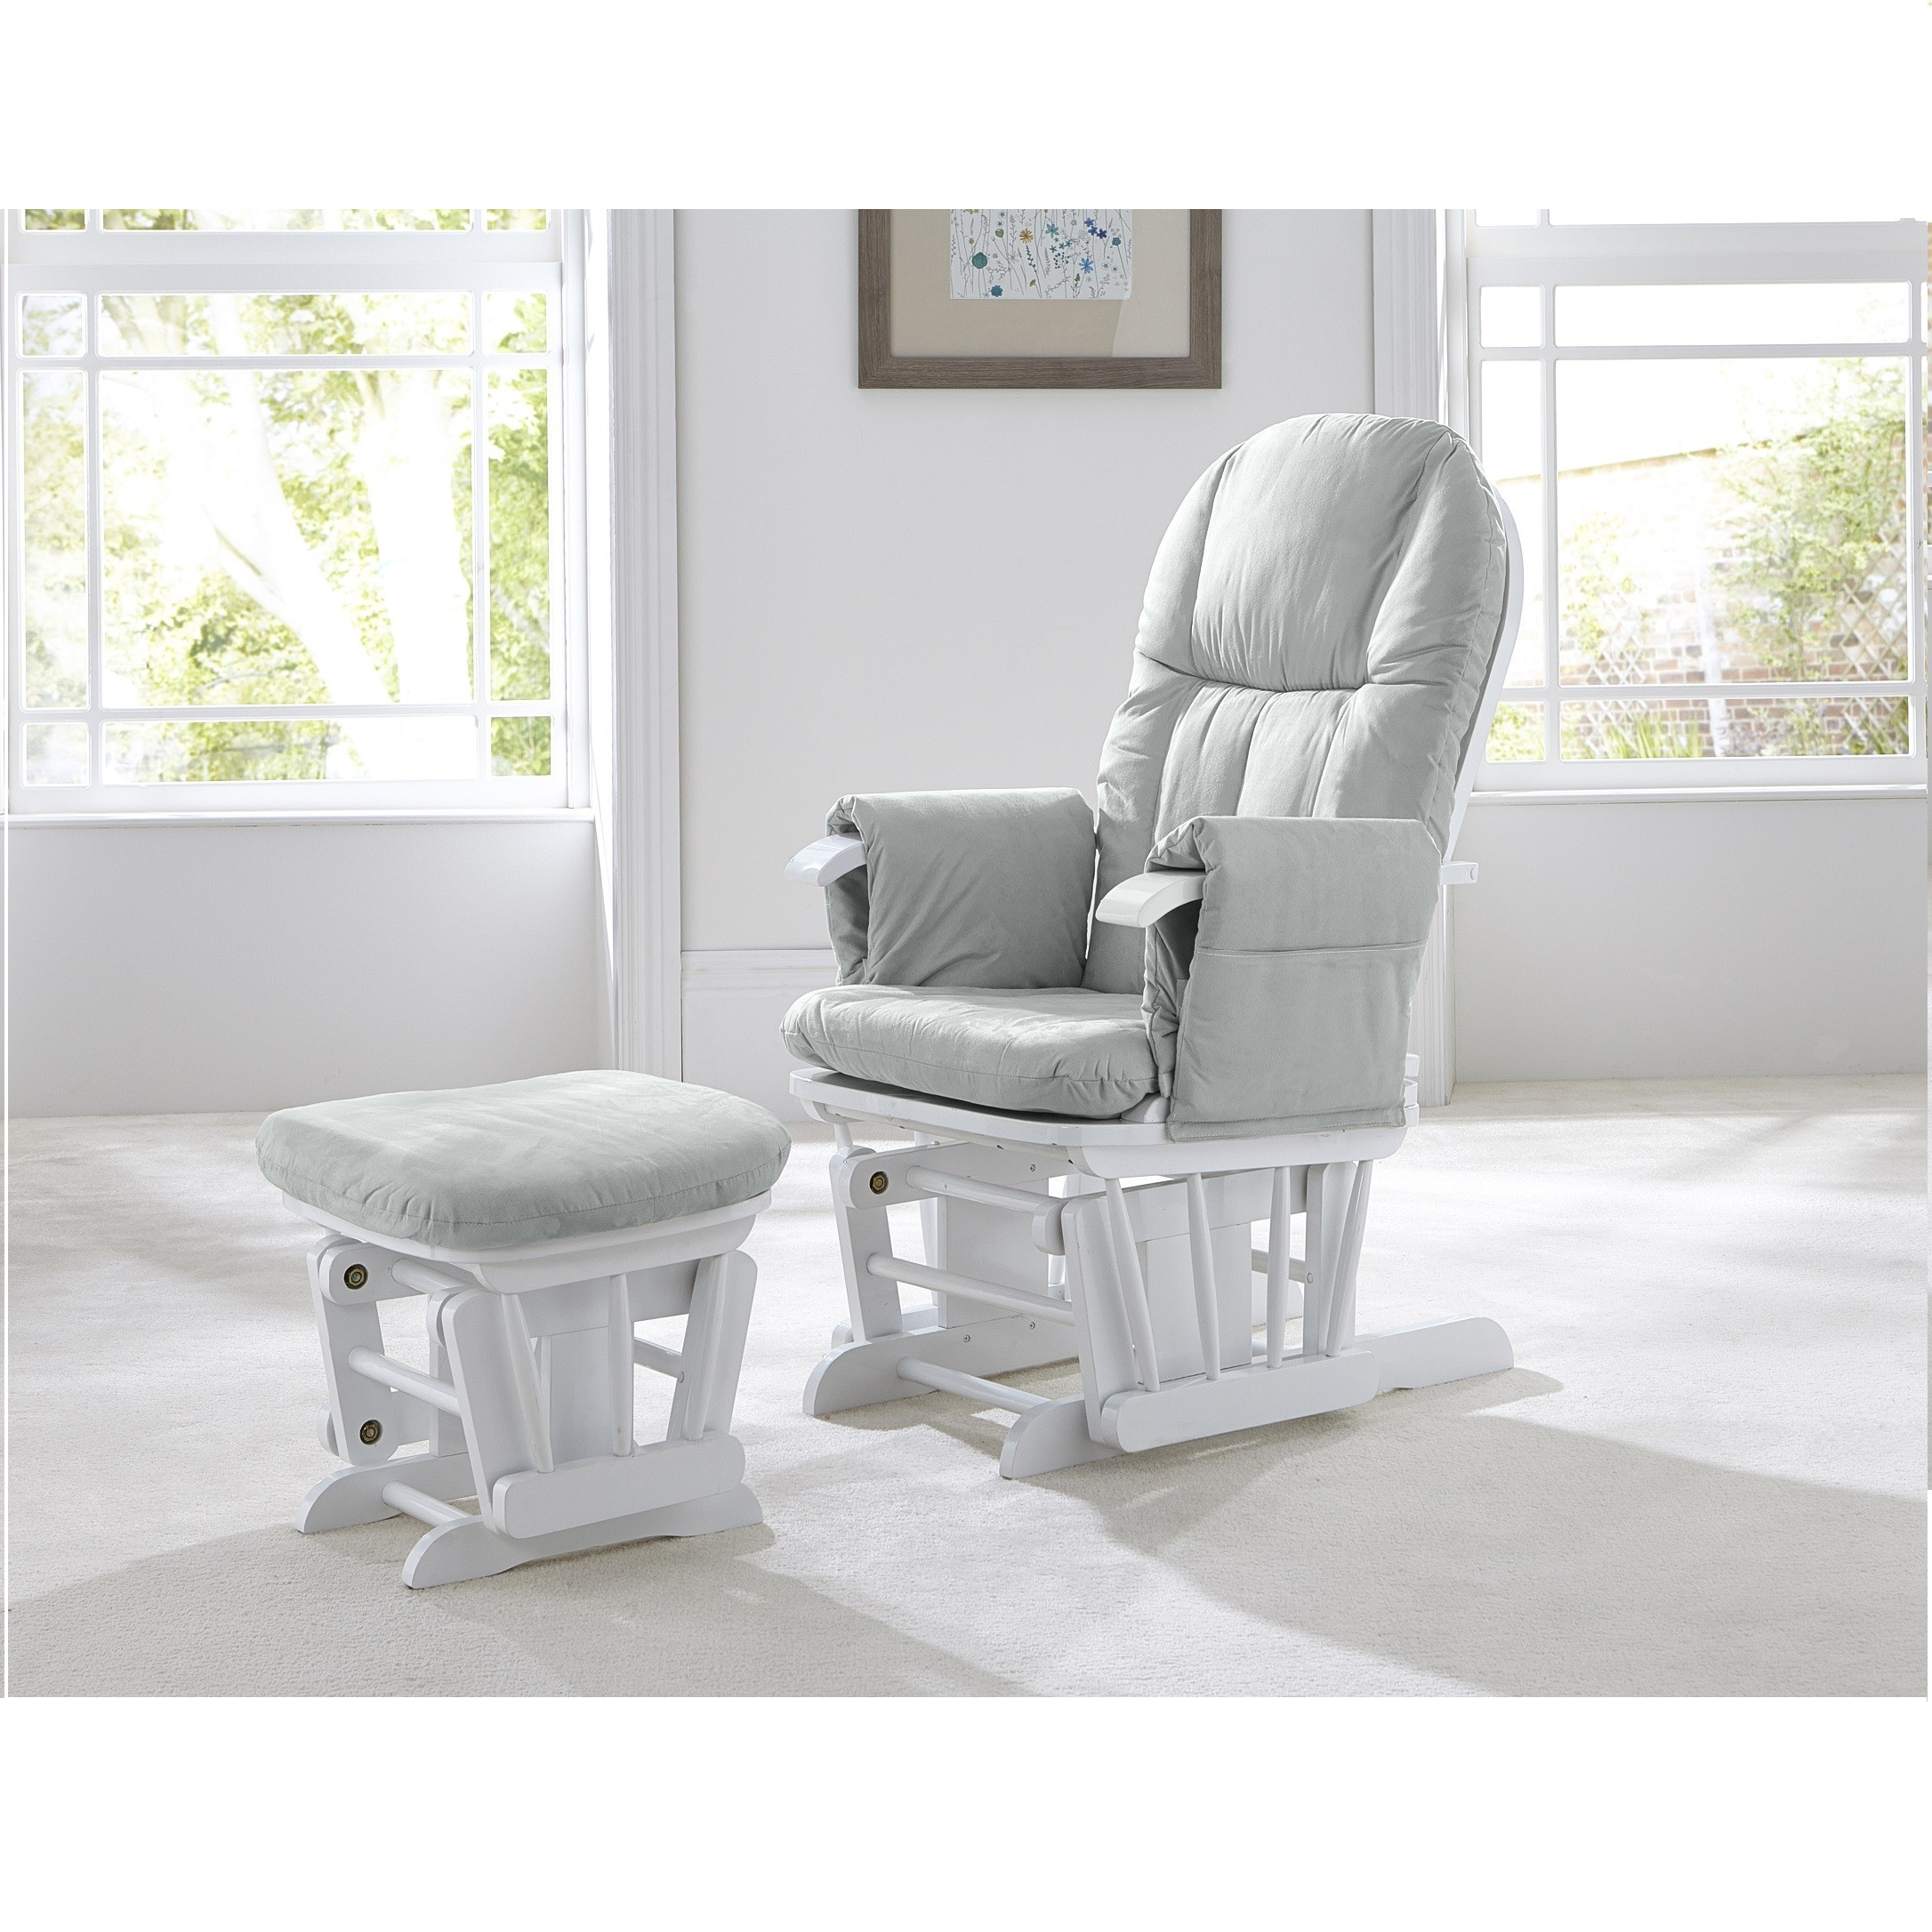 Pleasing Tutti Bambini Gc35 Reclining Glider Chair And Stool White With Grey Cushions Pabps2019 Chair Design Images Pabps2019Com